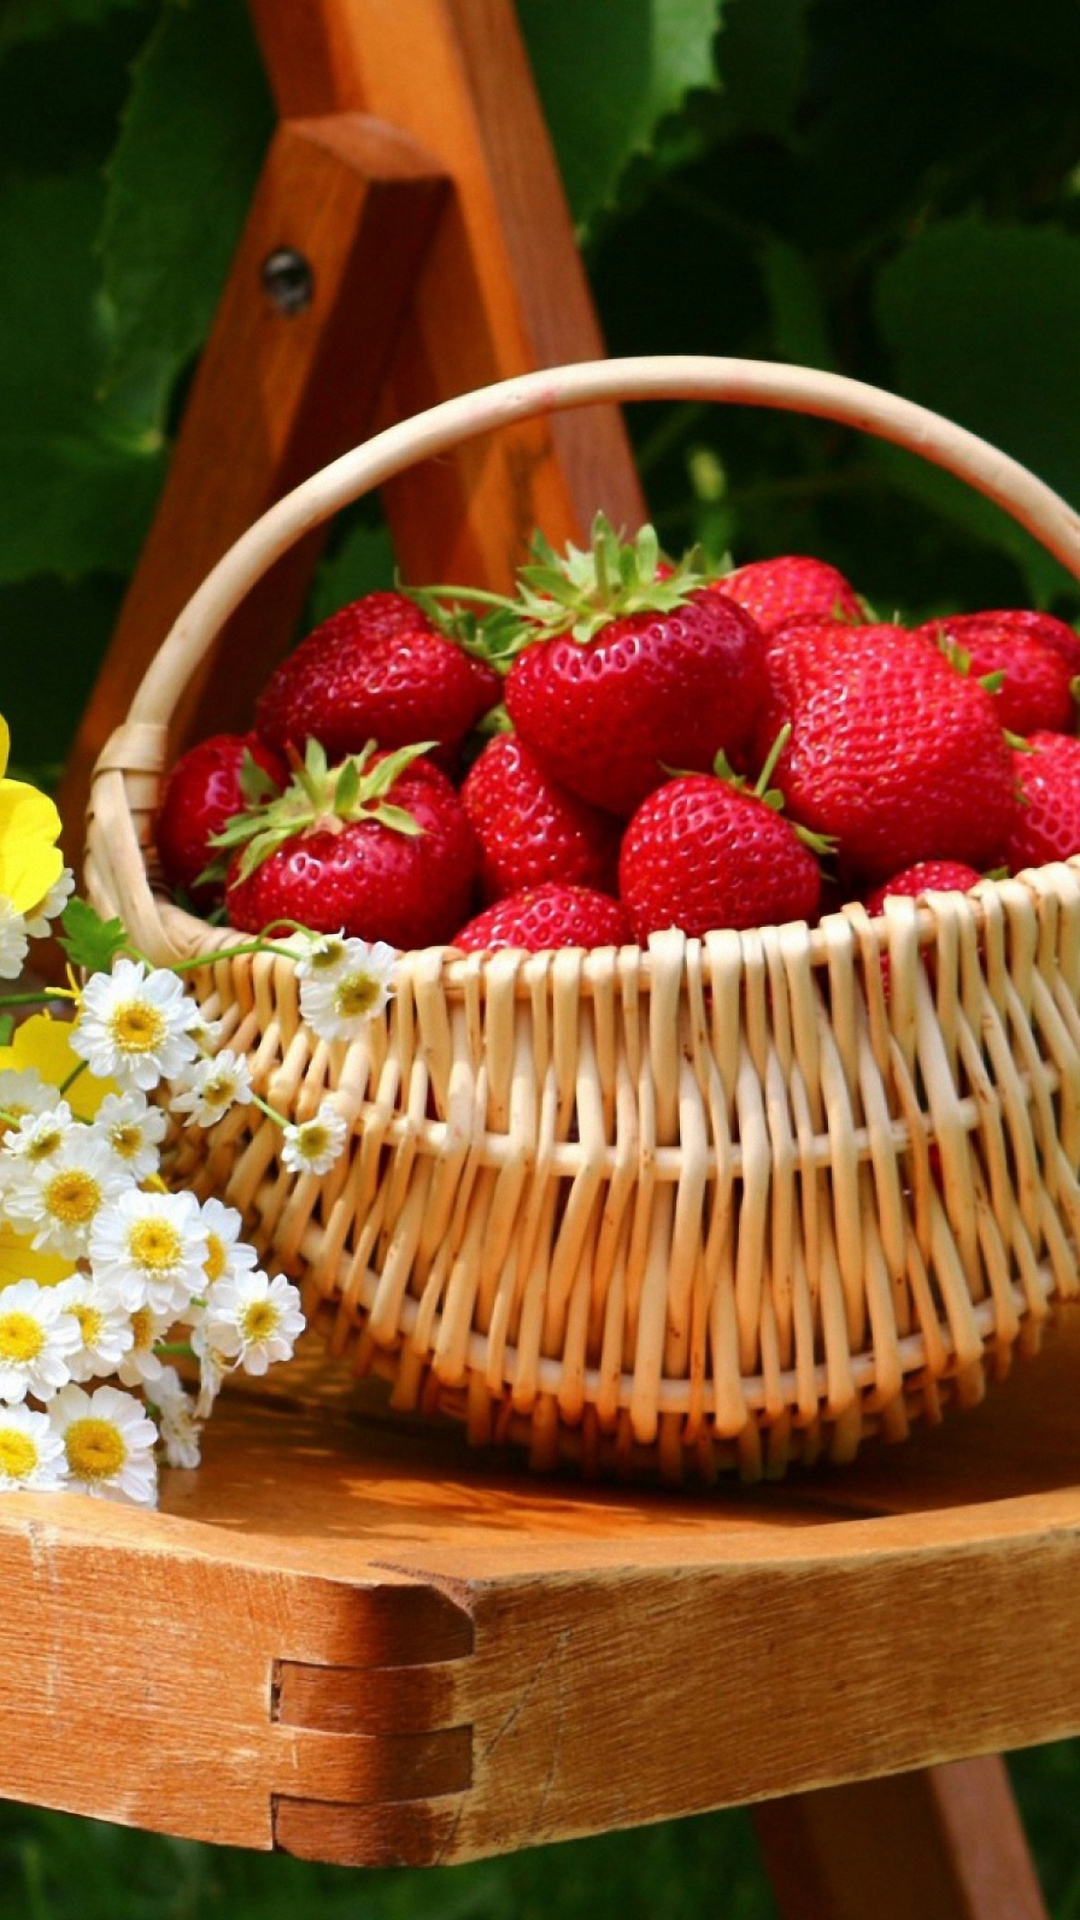 123 1233164 strawberry basket iphone 6 wallpapers hd strawberry wallpaper